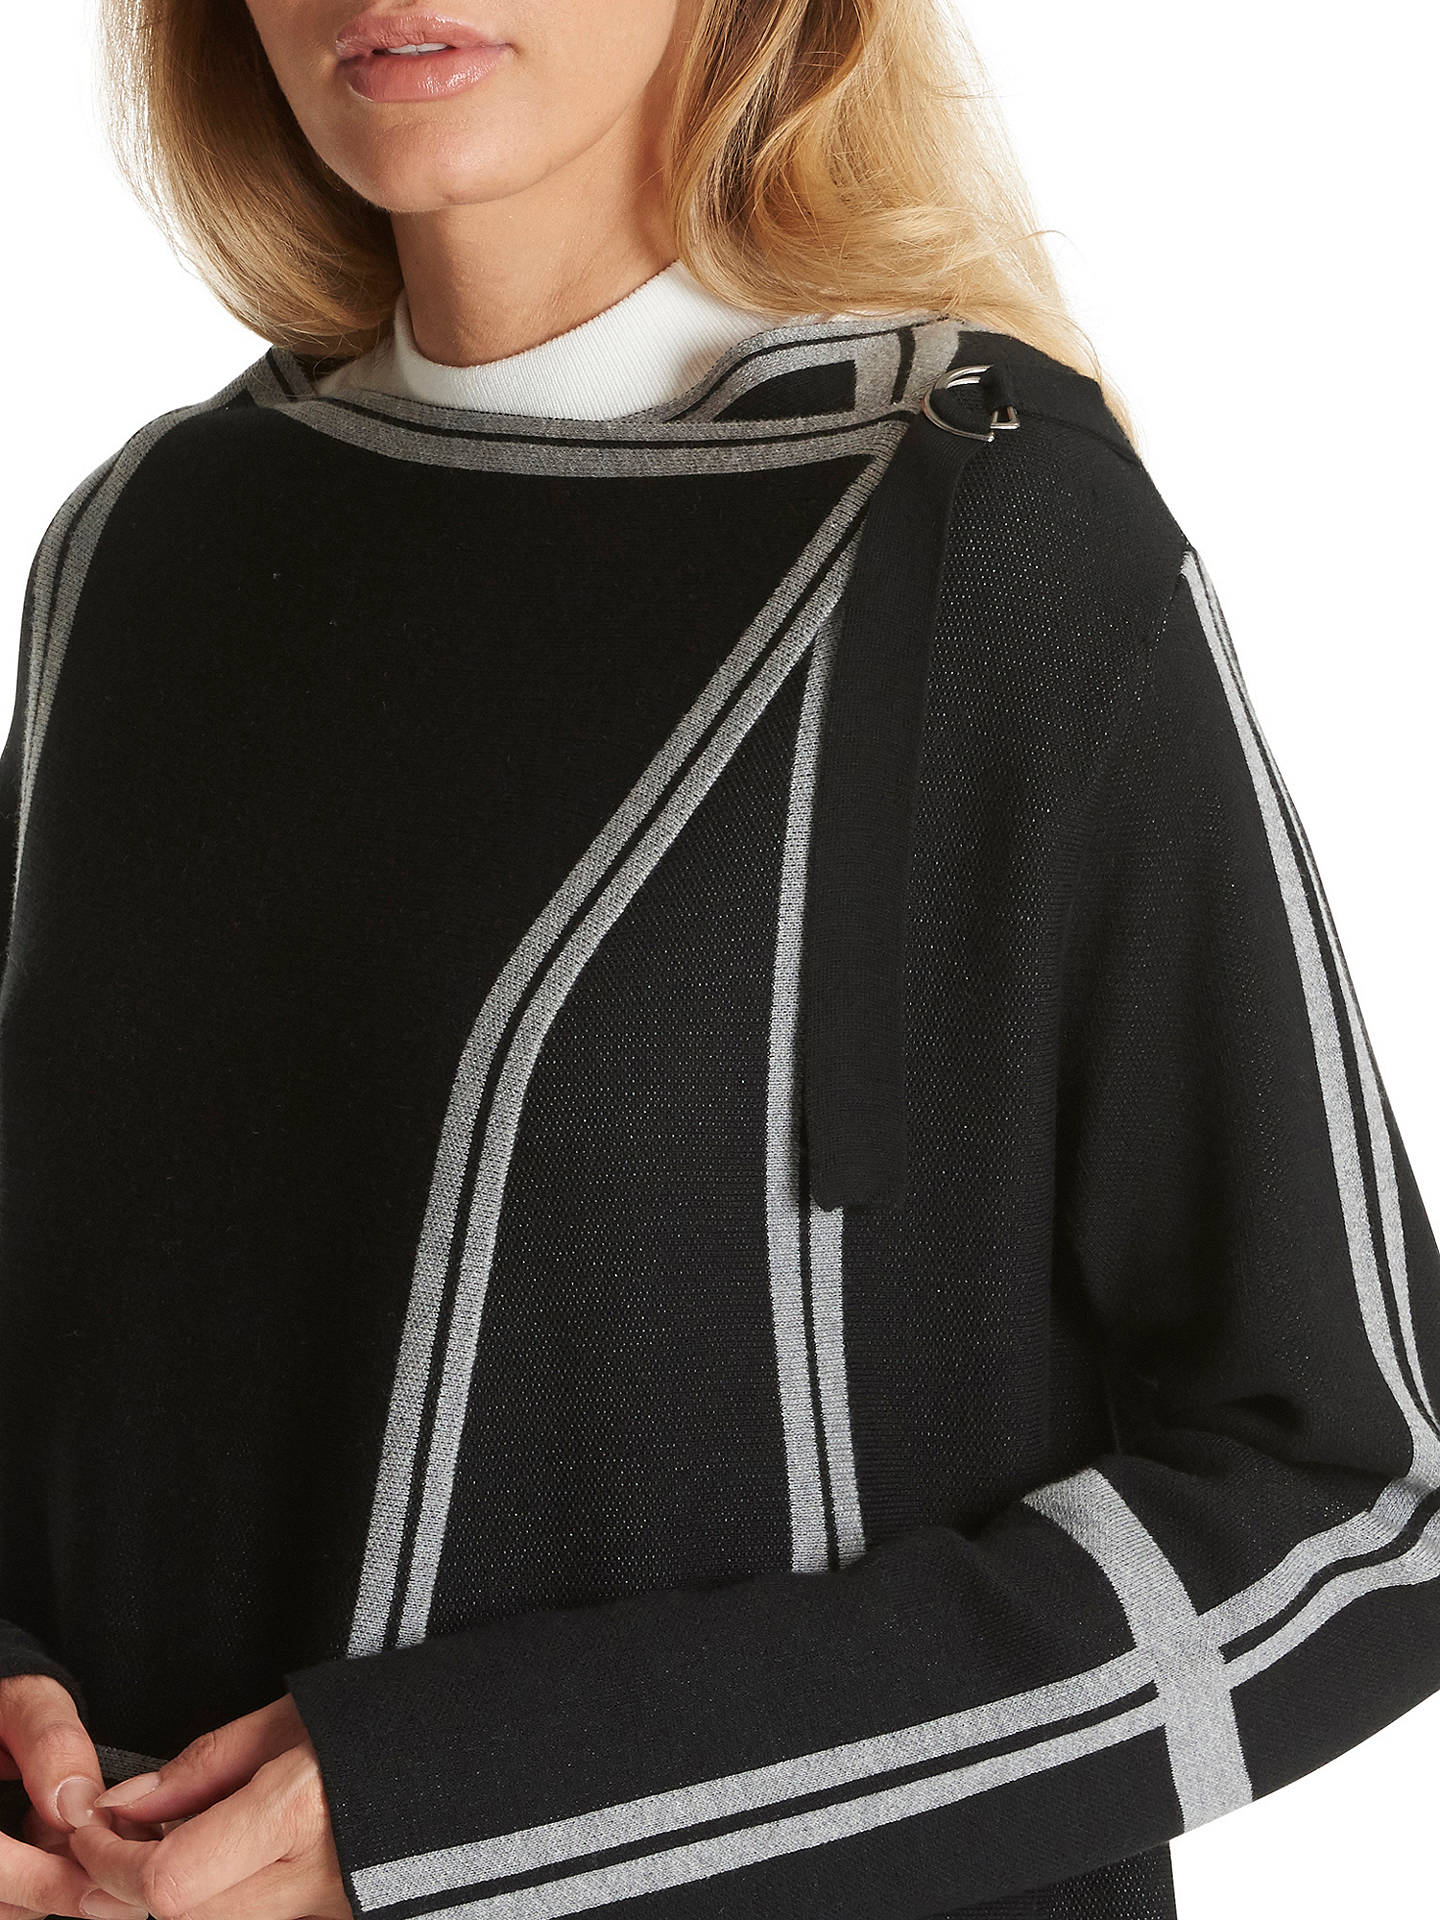 Buy Betty Barclay Wrapped Cardigan, Black/Grey, 10 Online at johnlewis.com